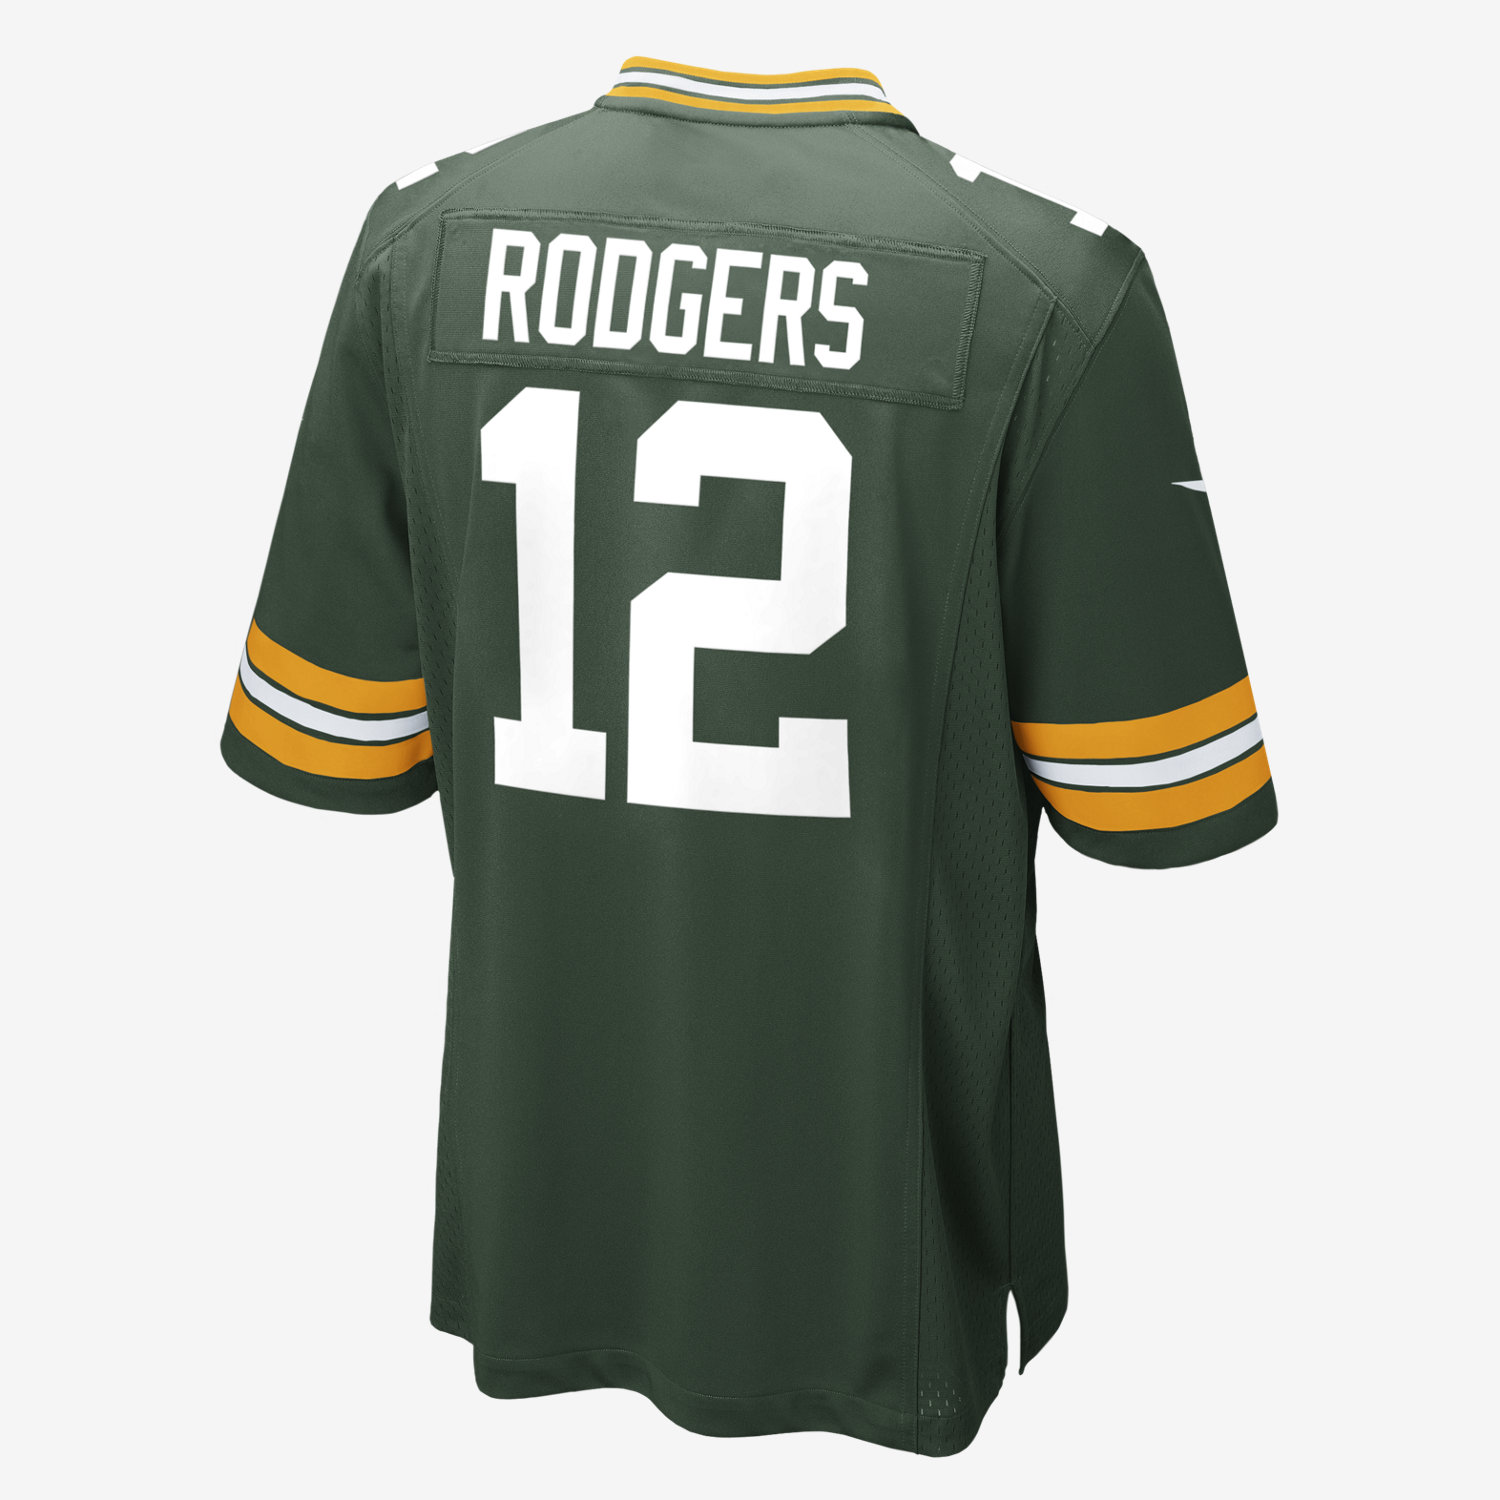 6431769f2 NFL Men s Nike Green Bay Packers  17 Davante Adams Stitched Green Olive  Salute To Service KO Performance Hoodie